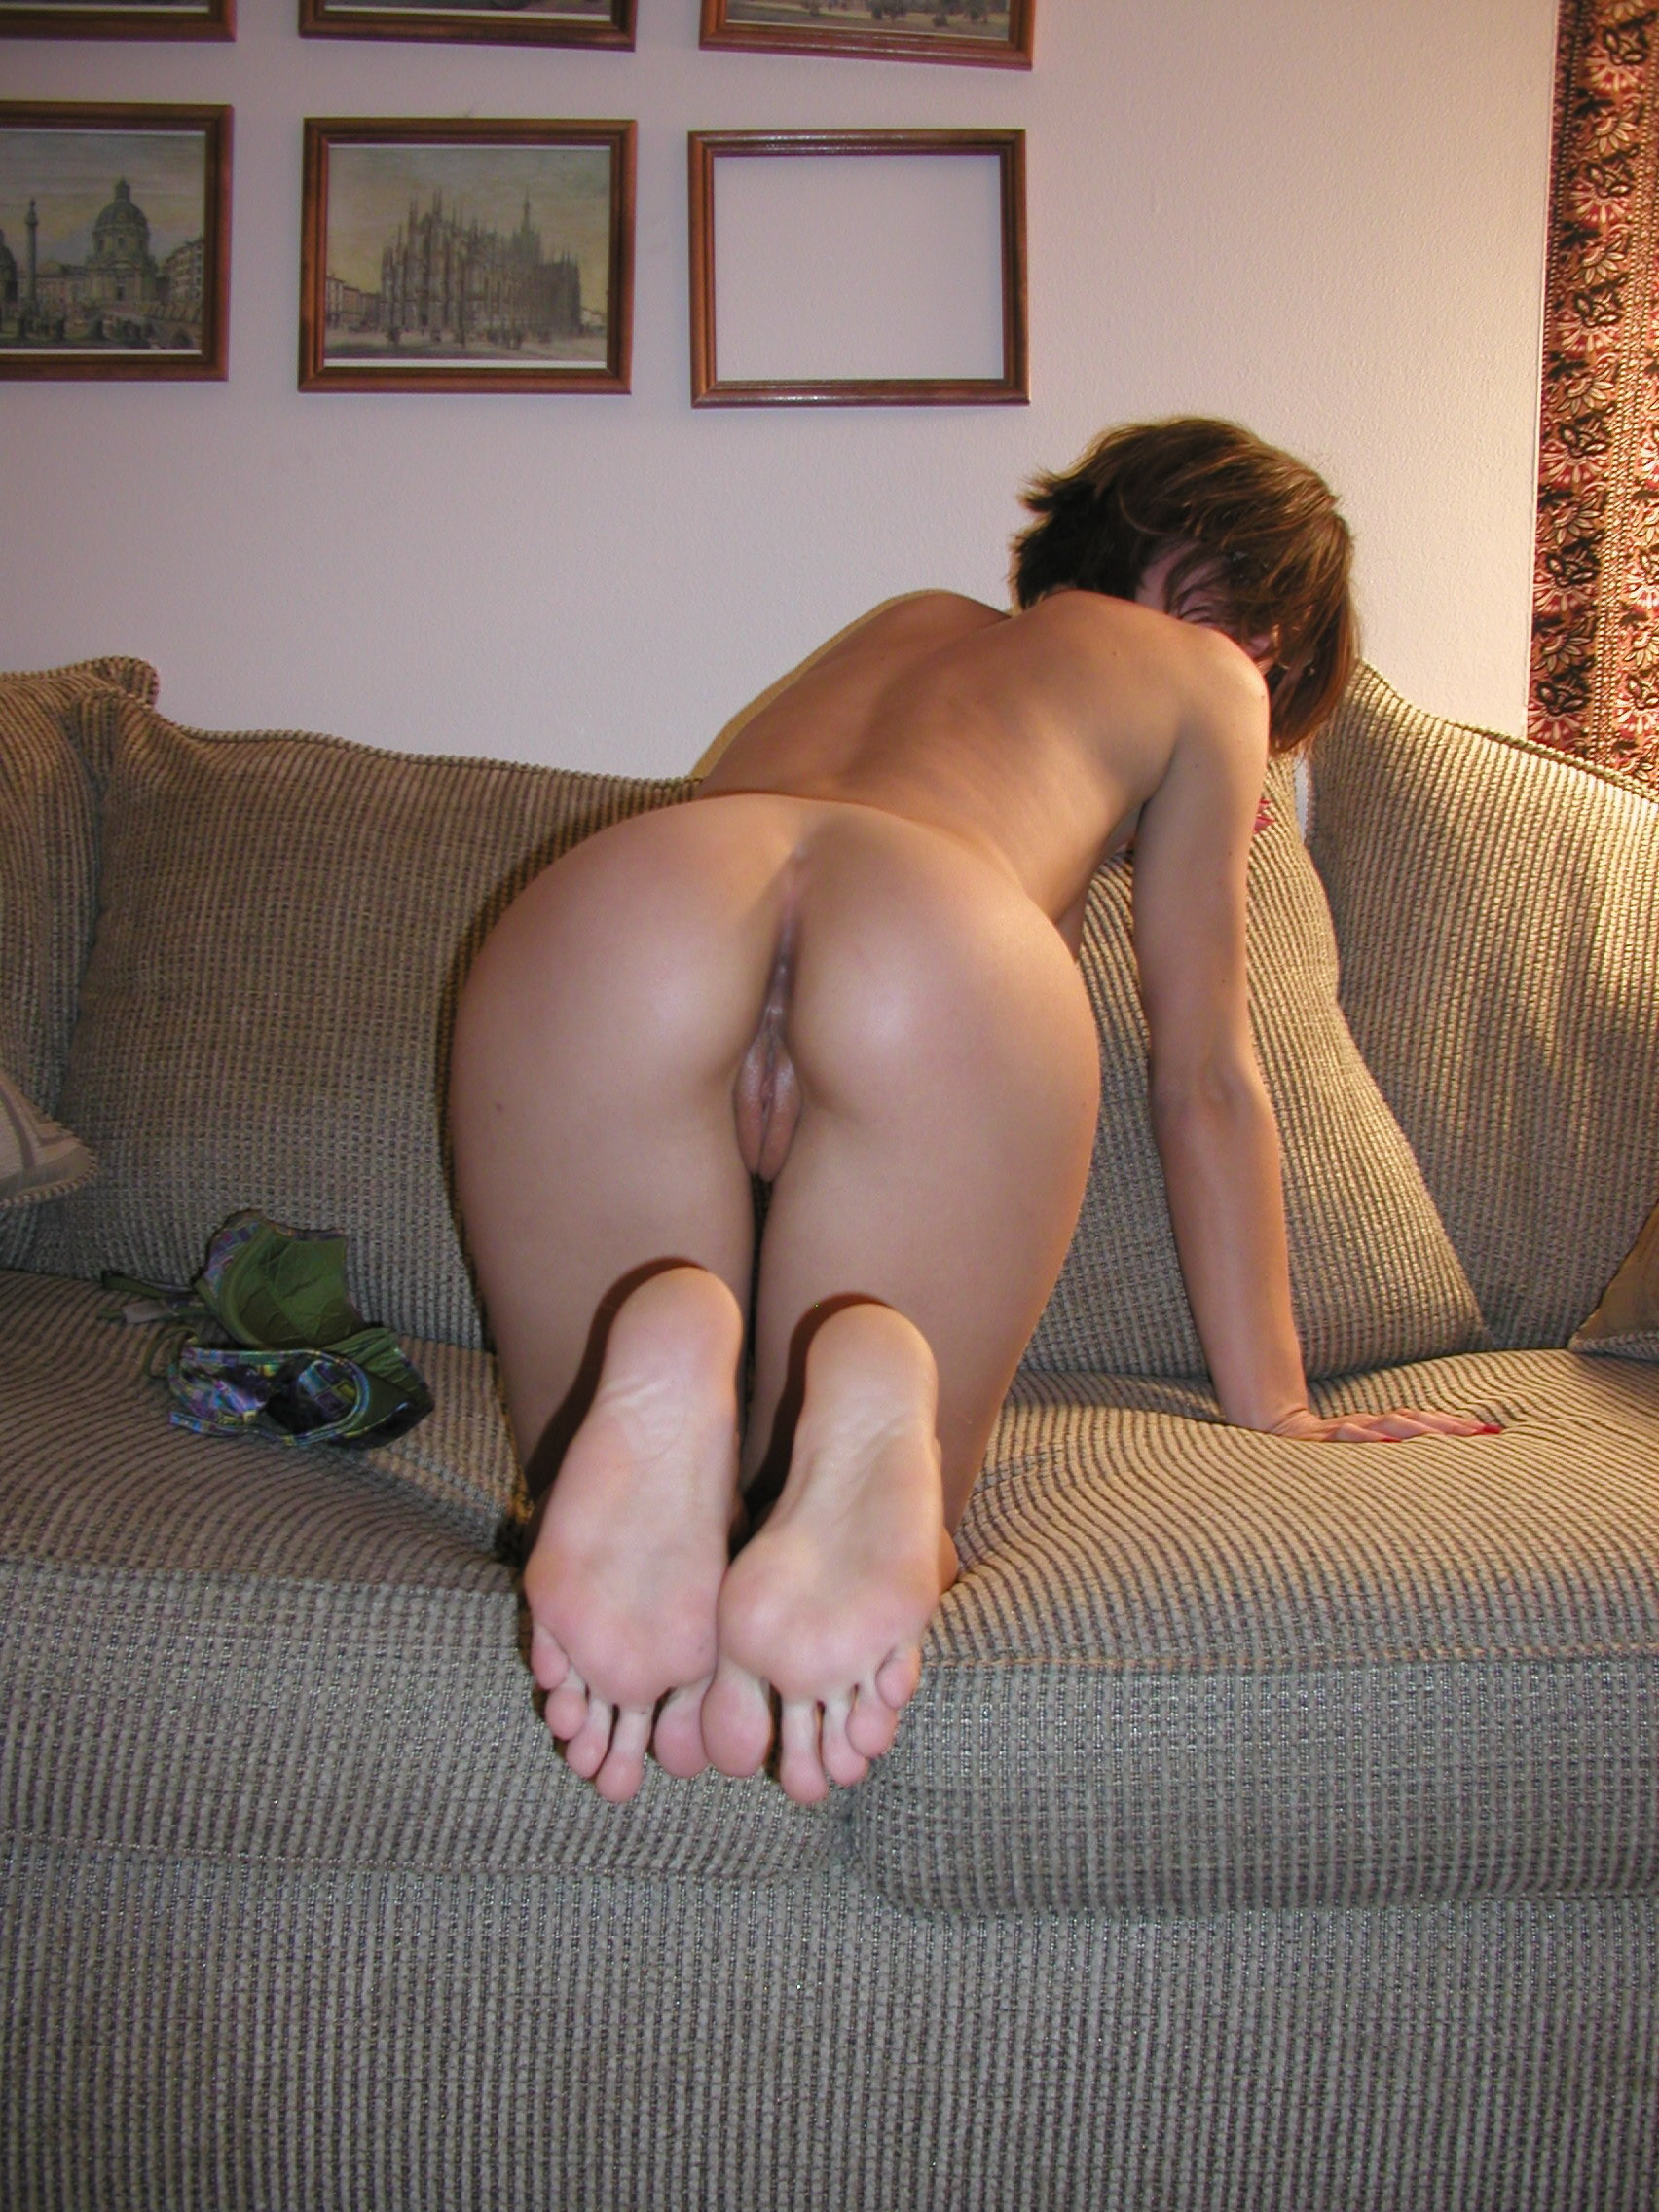 Nice native ass and pussy